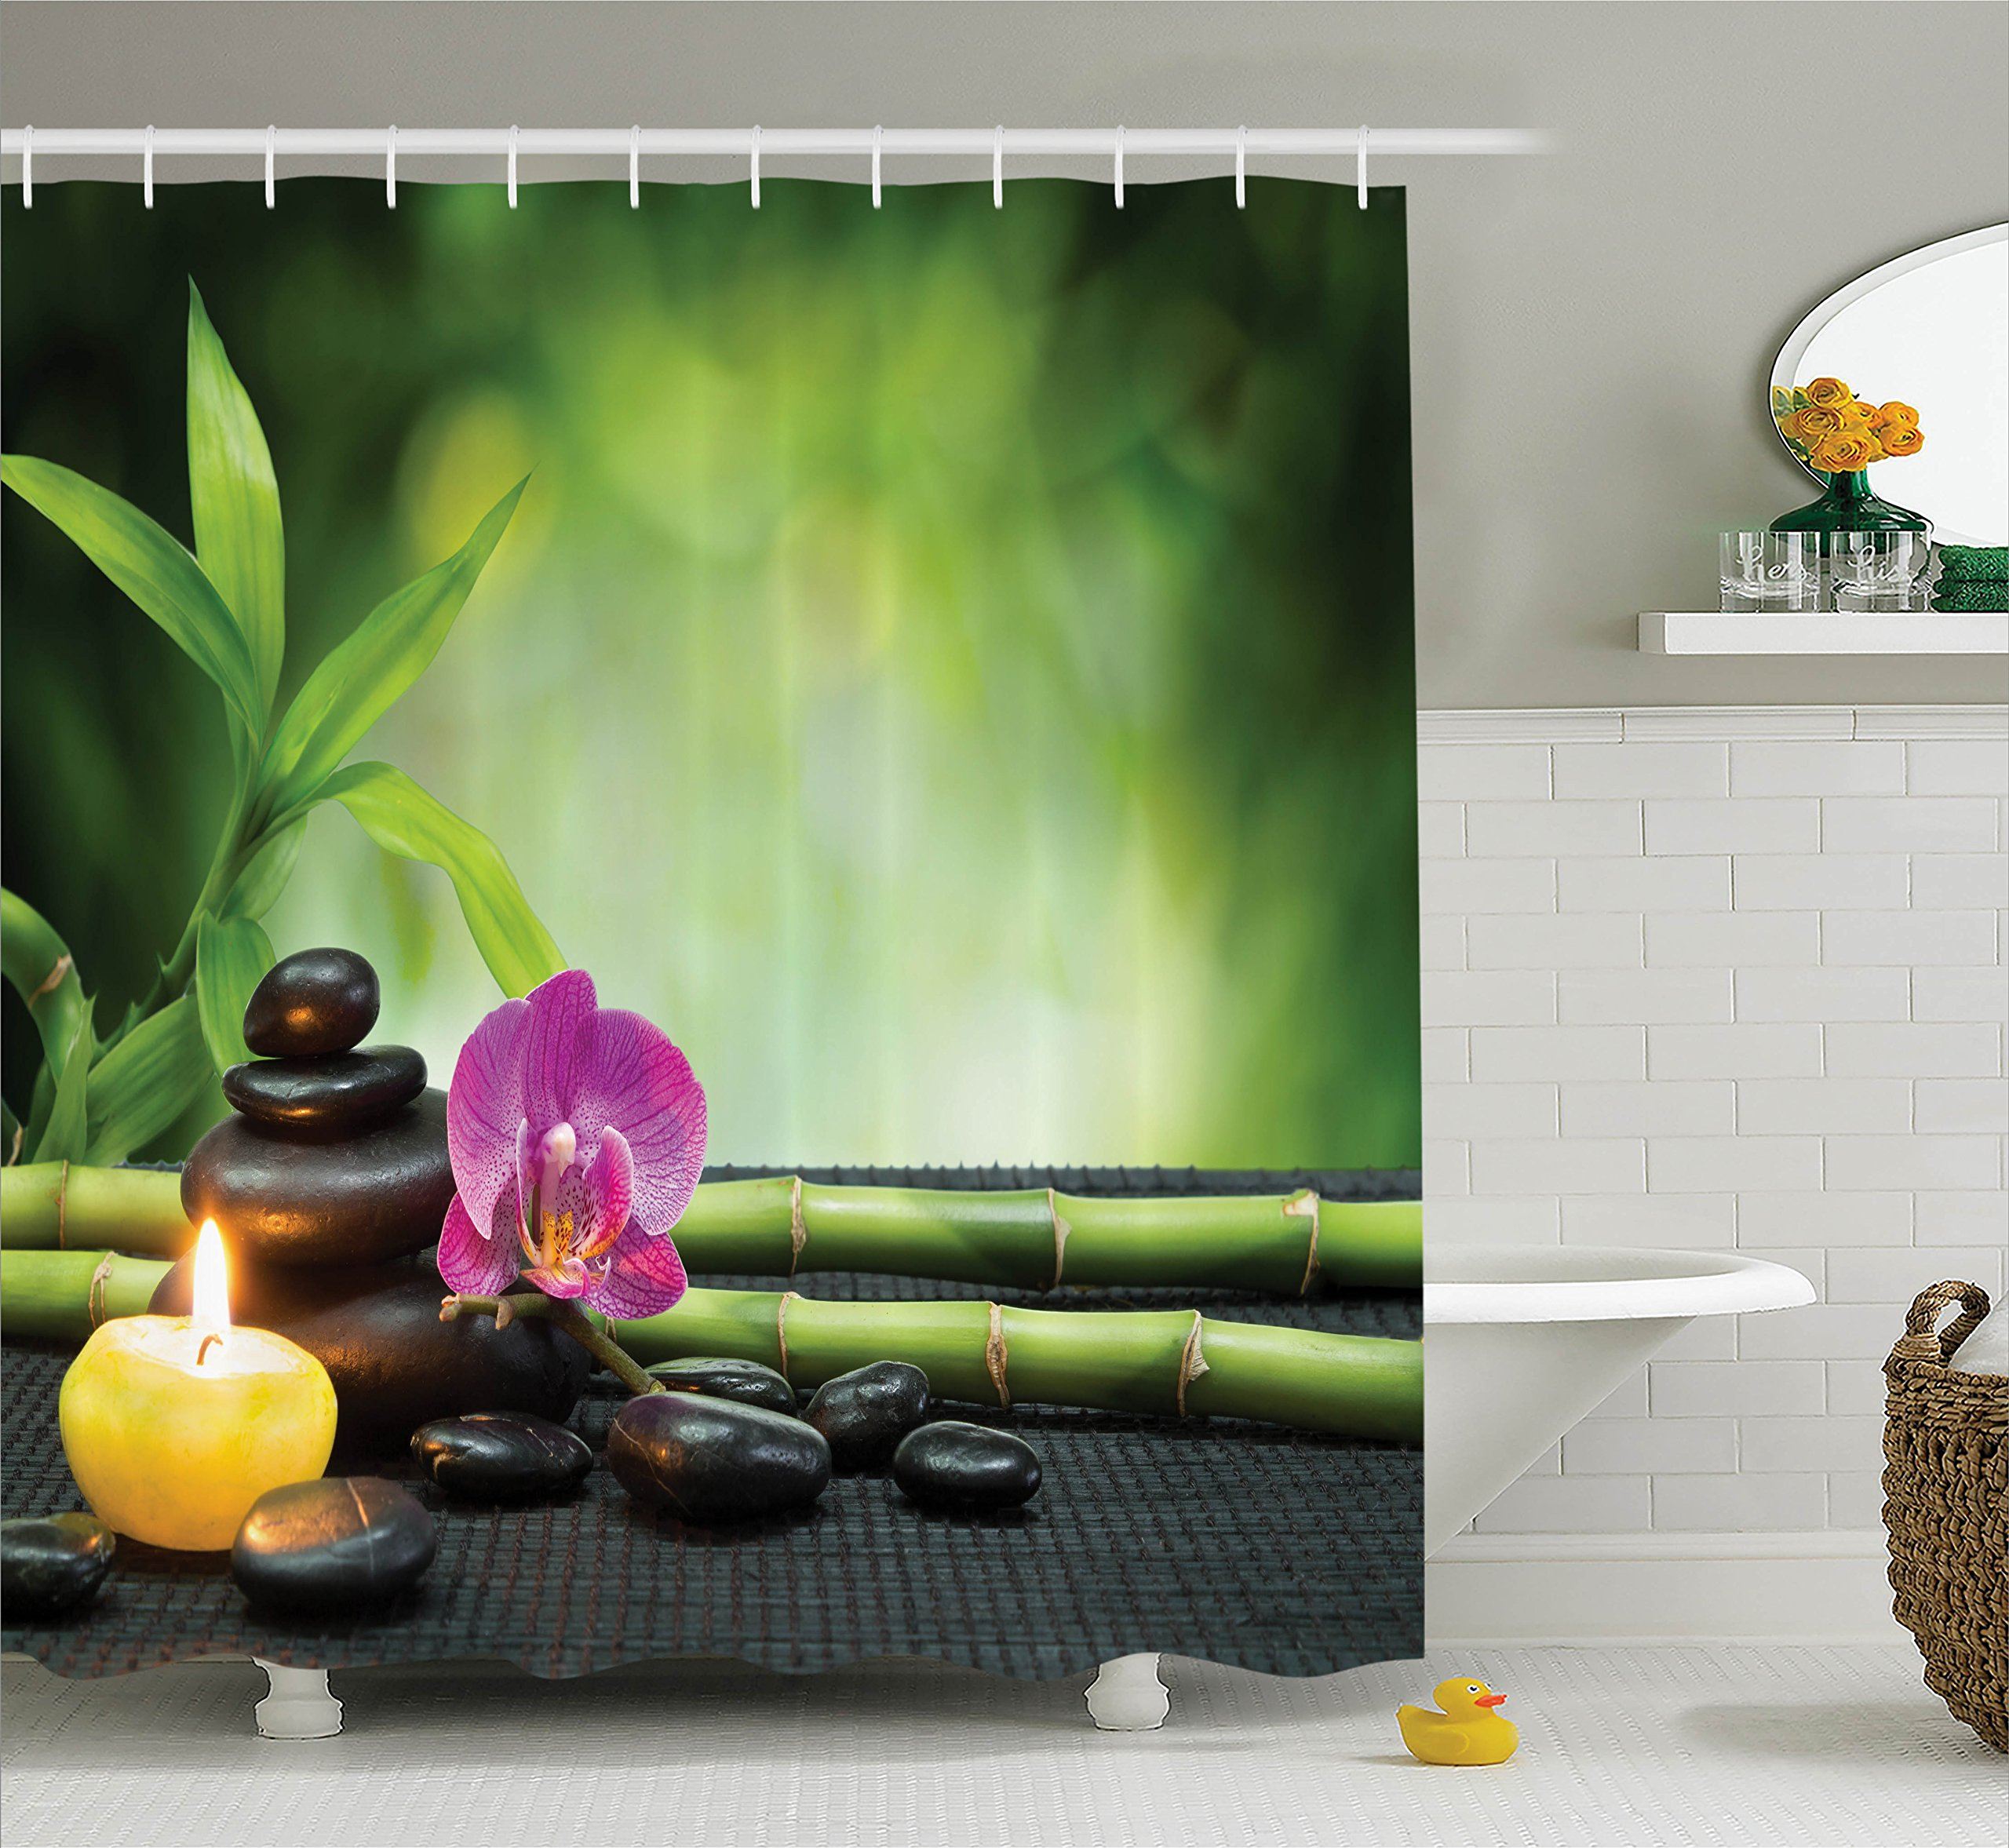 Ambesonne Spa Decor Shower Curtain Set, Orchid Bamboo Stems Chakra Stones Japanese Alternative Feng Shui Elements Therapy Design, Bathroom Accessories, 69 W X 70 L Inches, Green Black